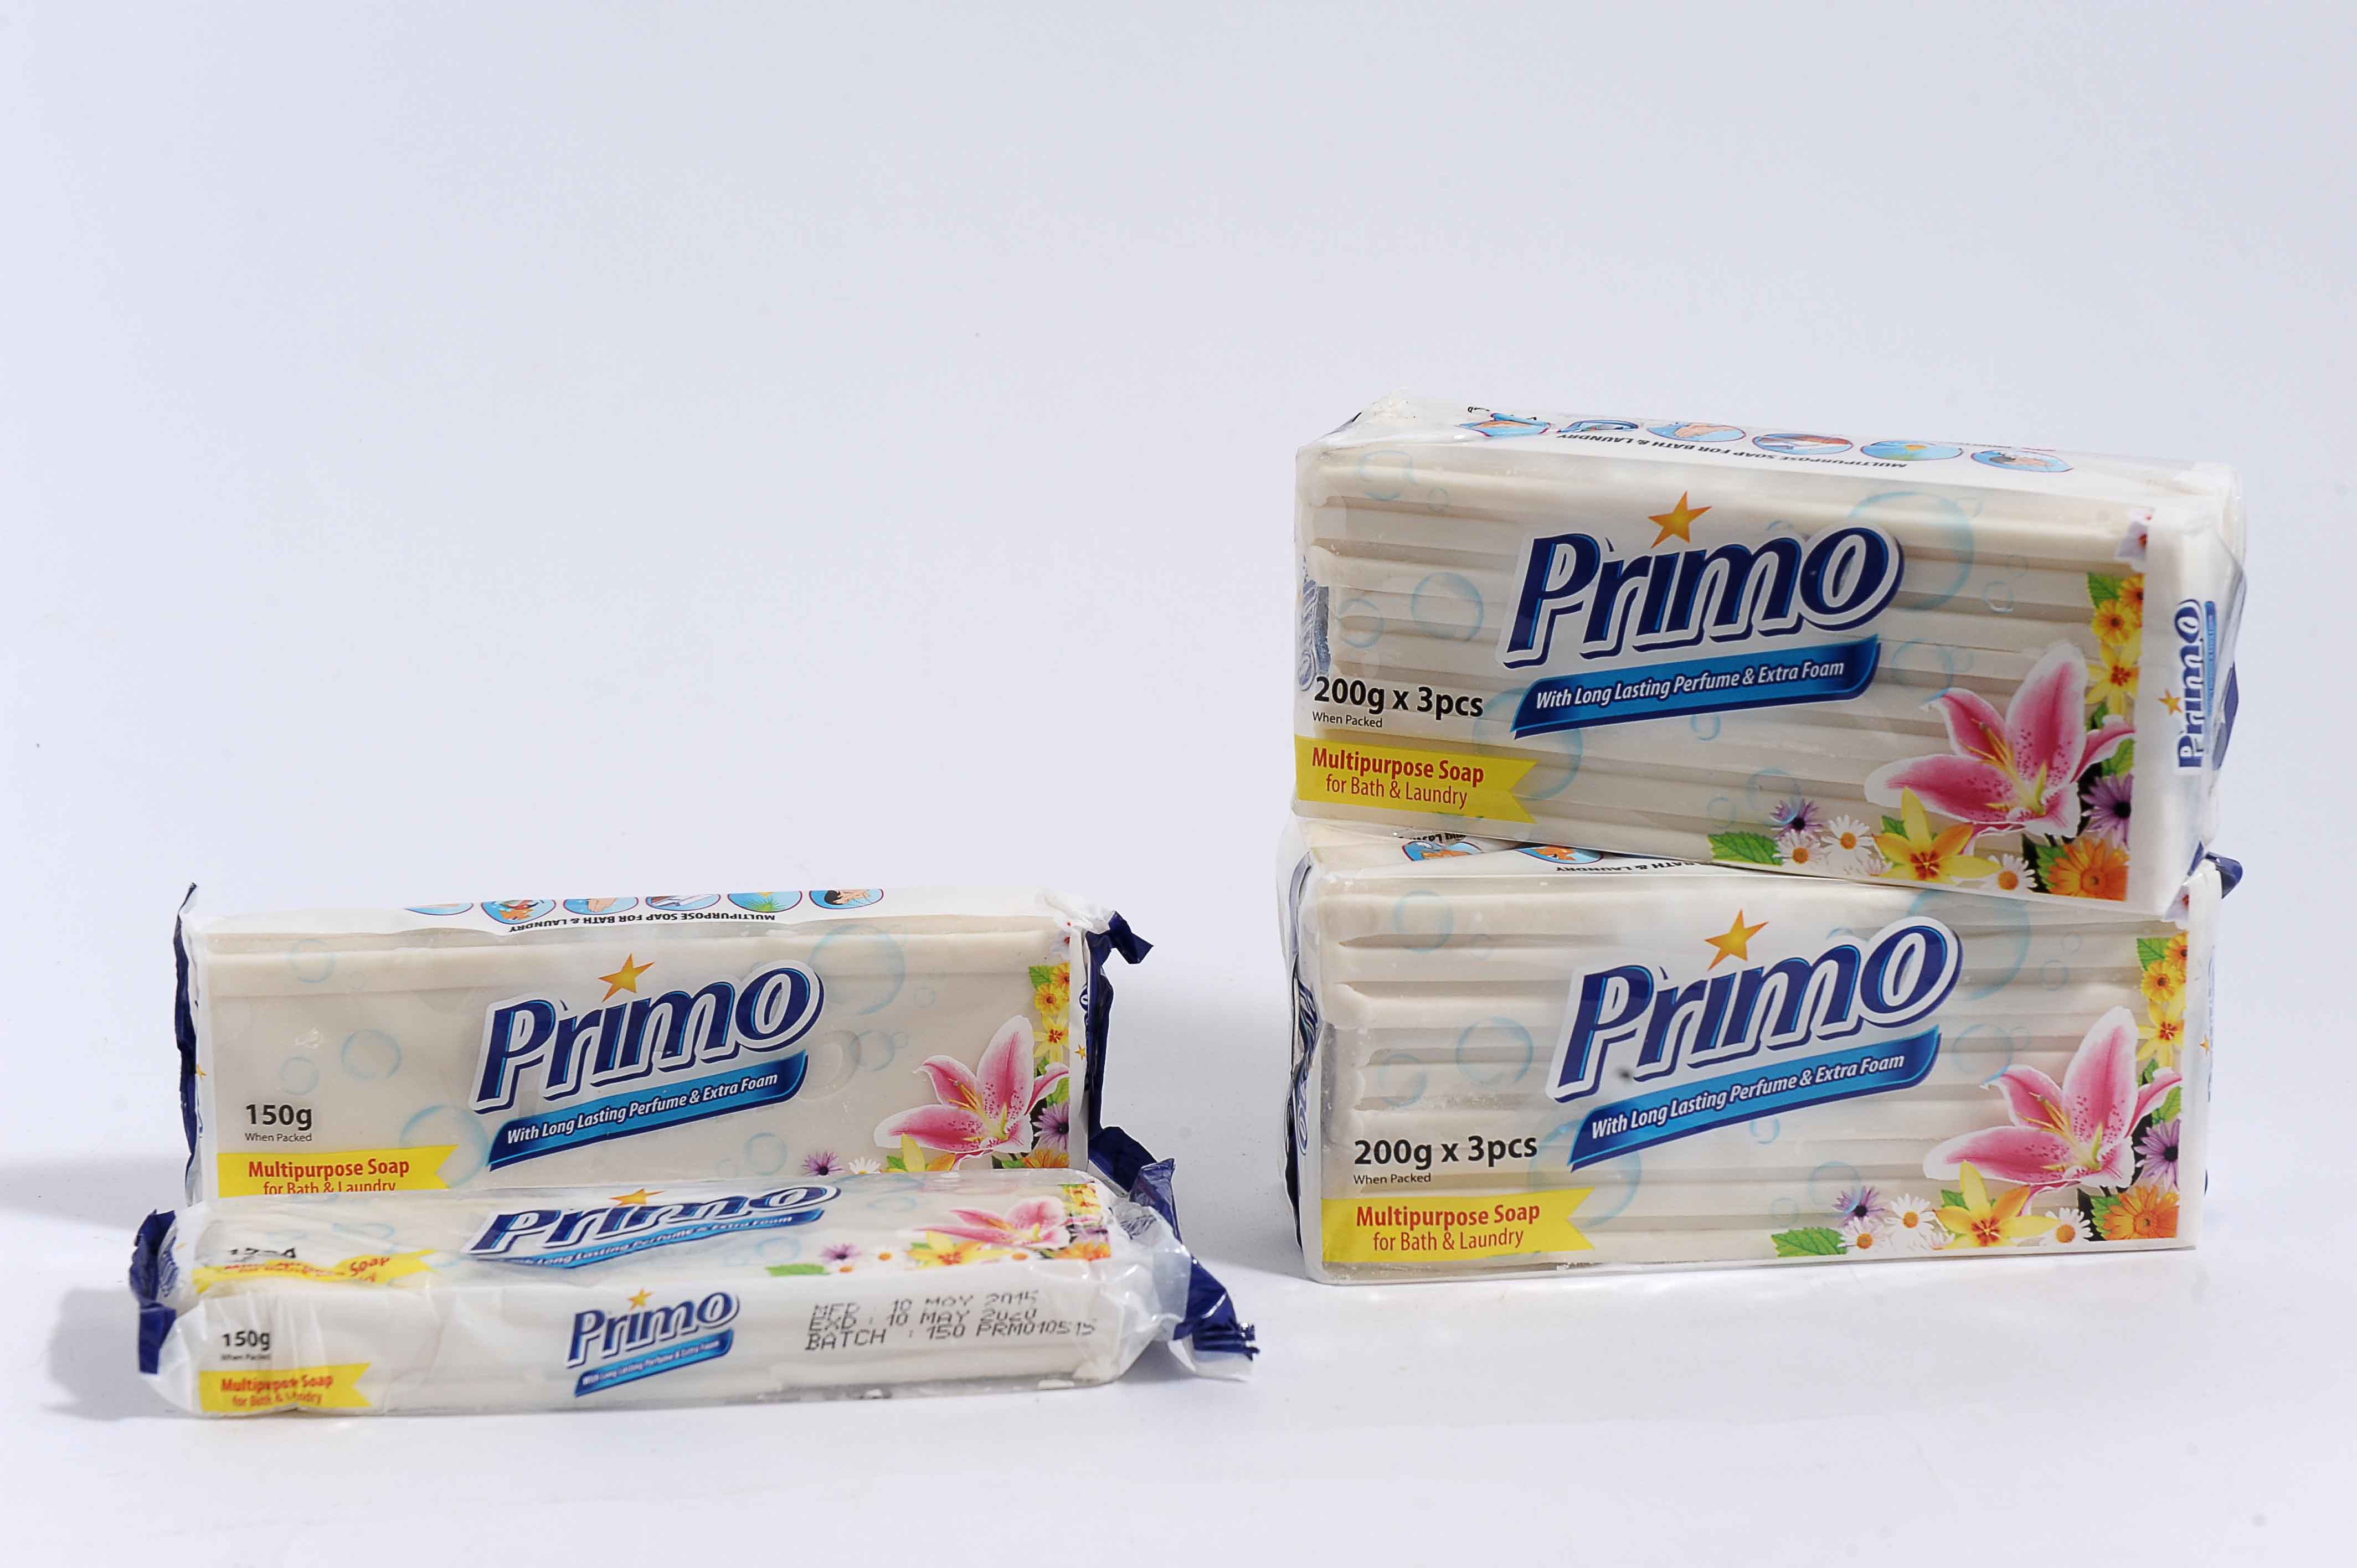 Primo Multipurpose Soap